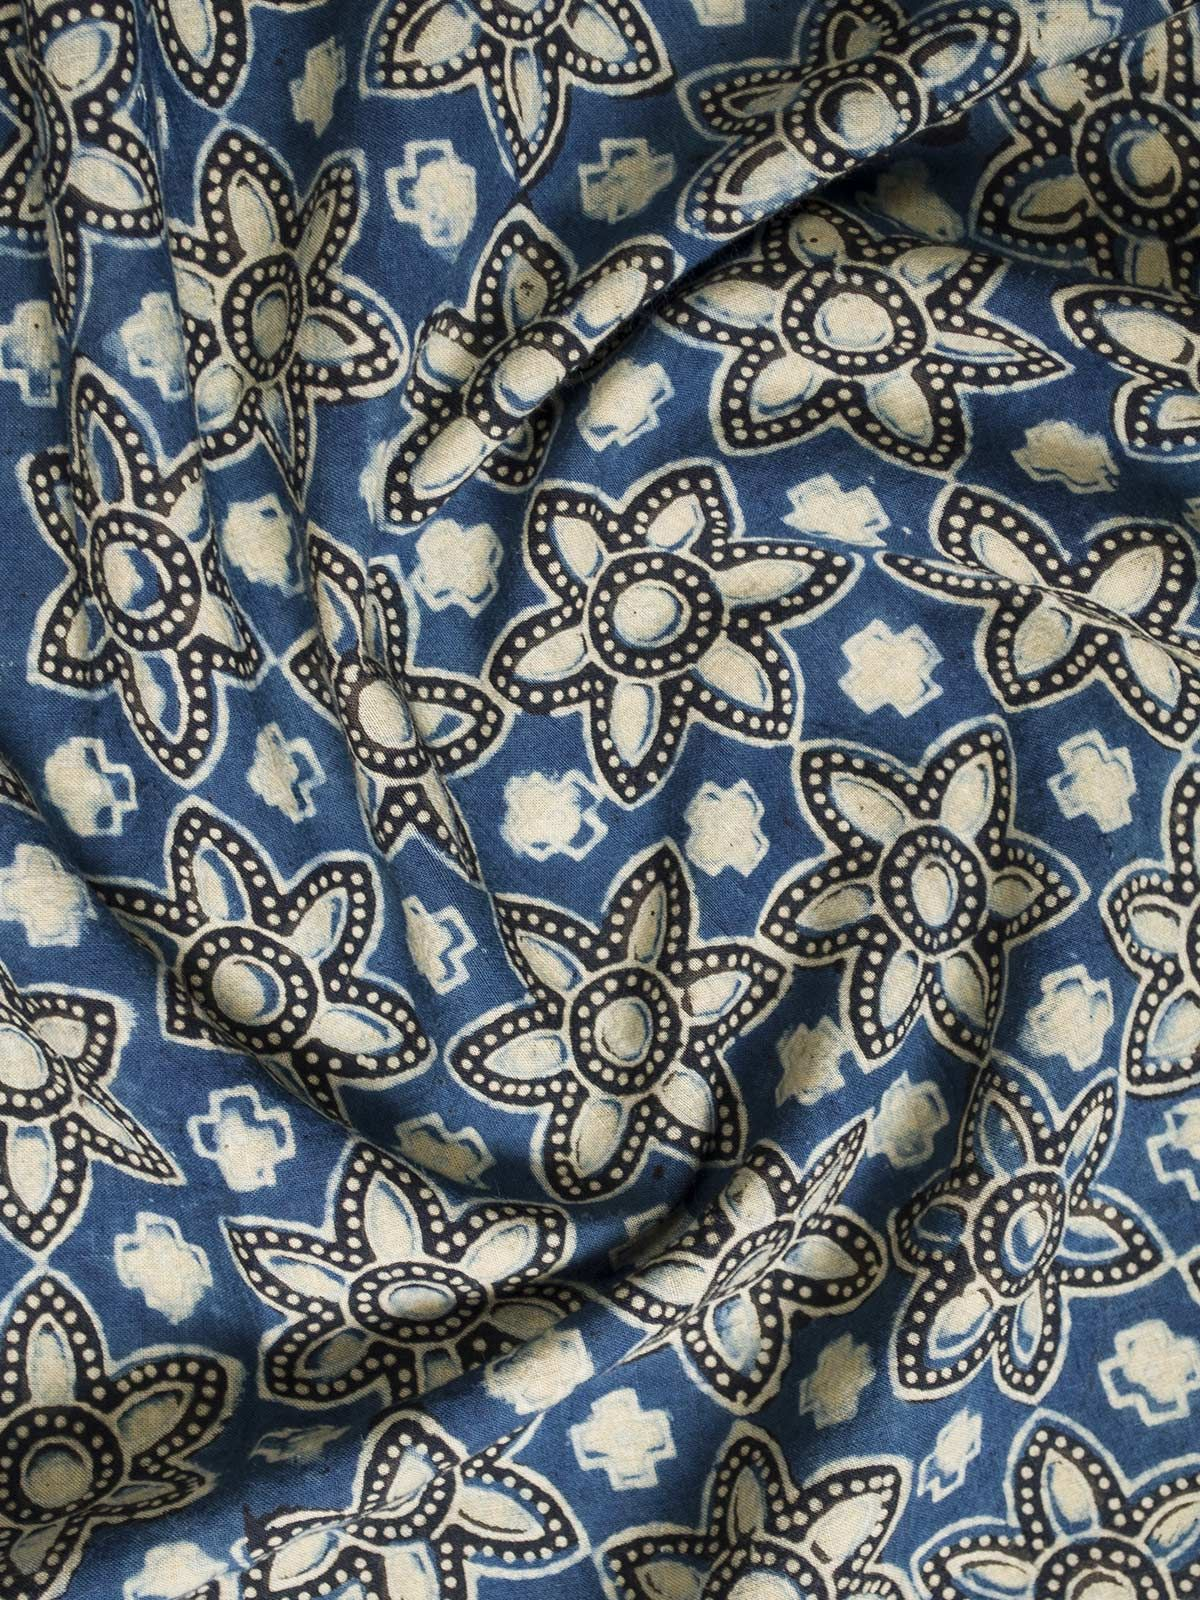 Blue and Cream Ajrak Block Print Cotton Fabric